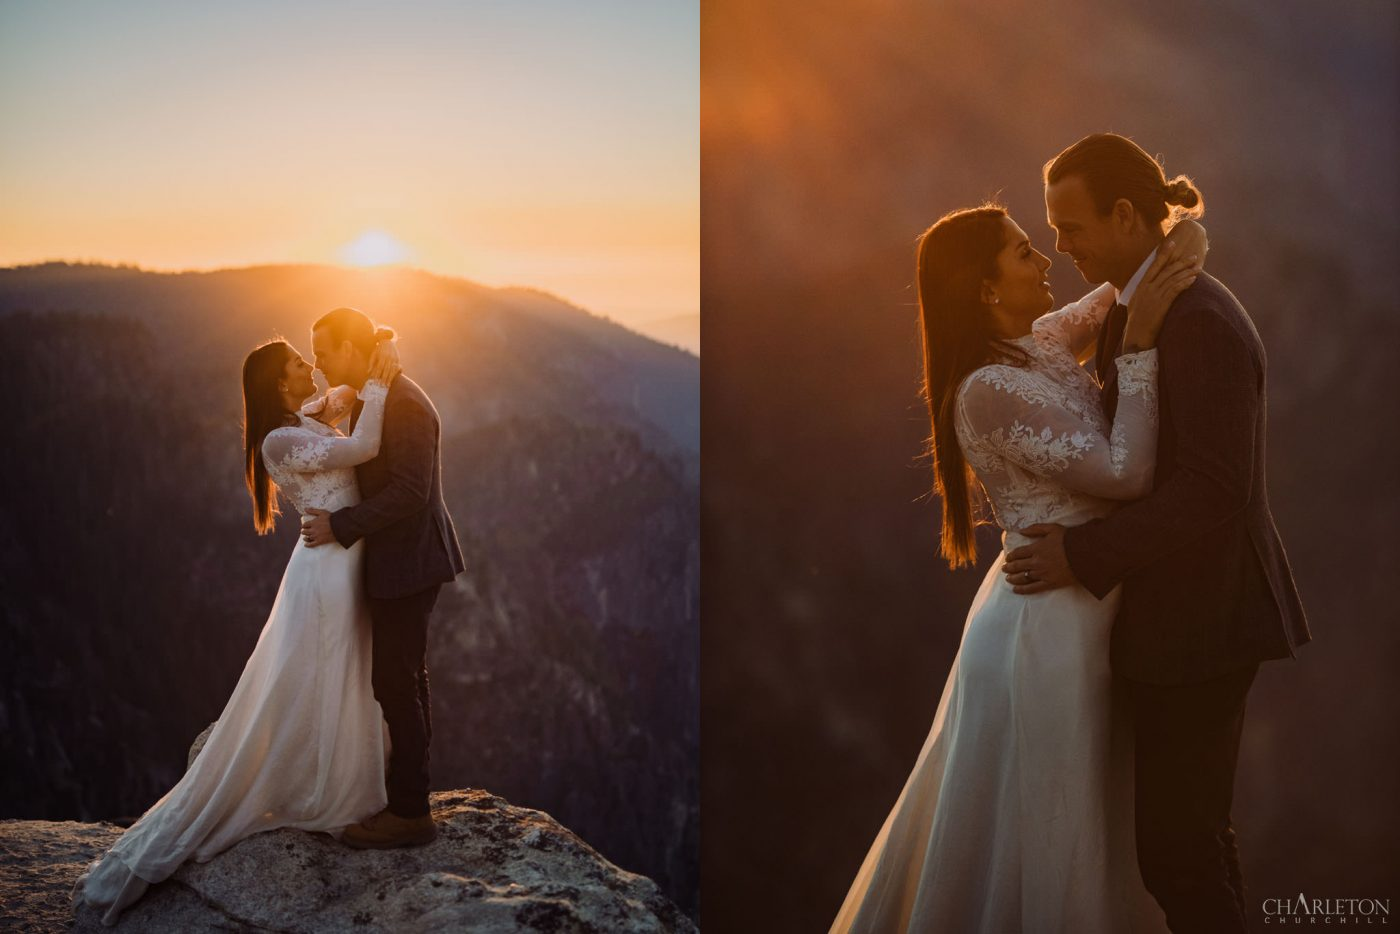 taft point elopement ceremony during sunset over the view of mountains